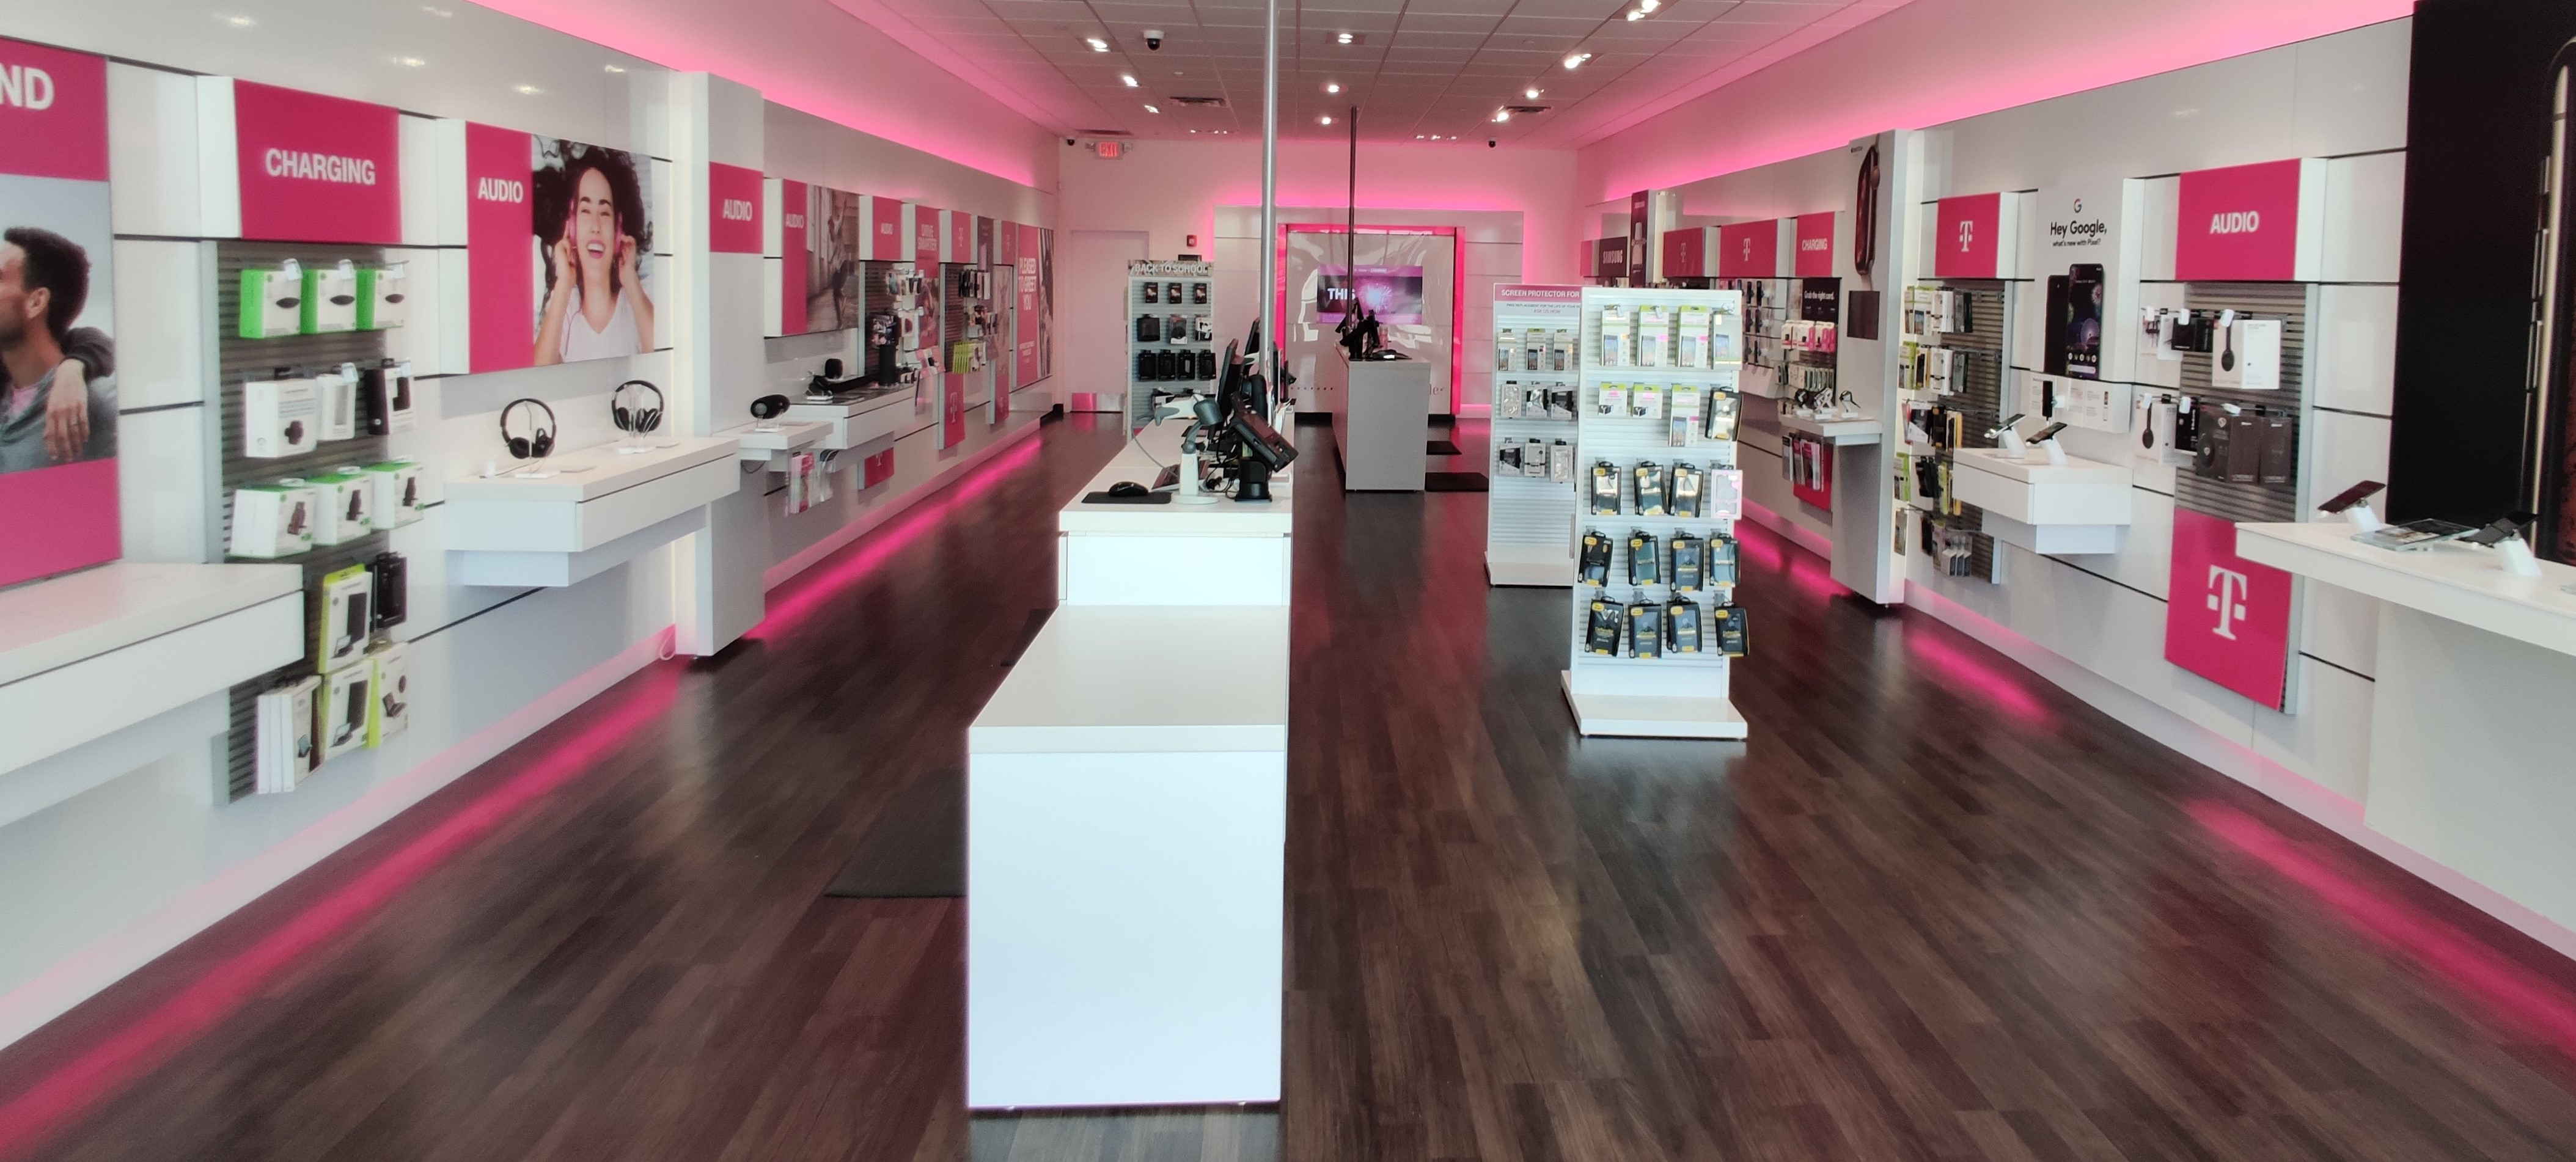 Cell Phones, Plans, and Accessories at T-Mobile 700